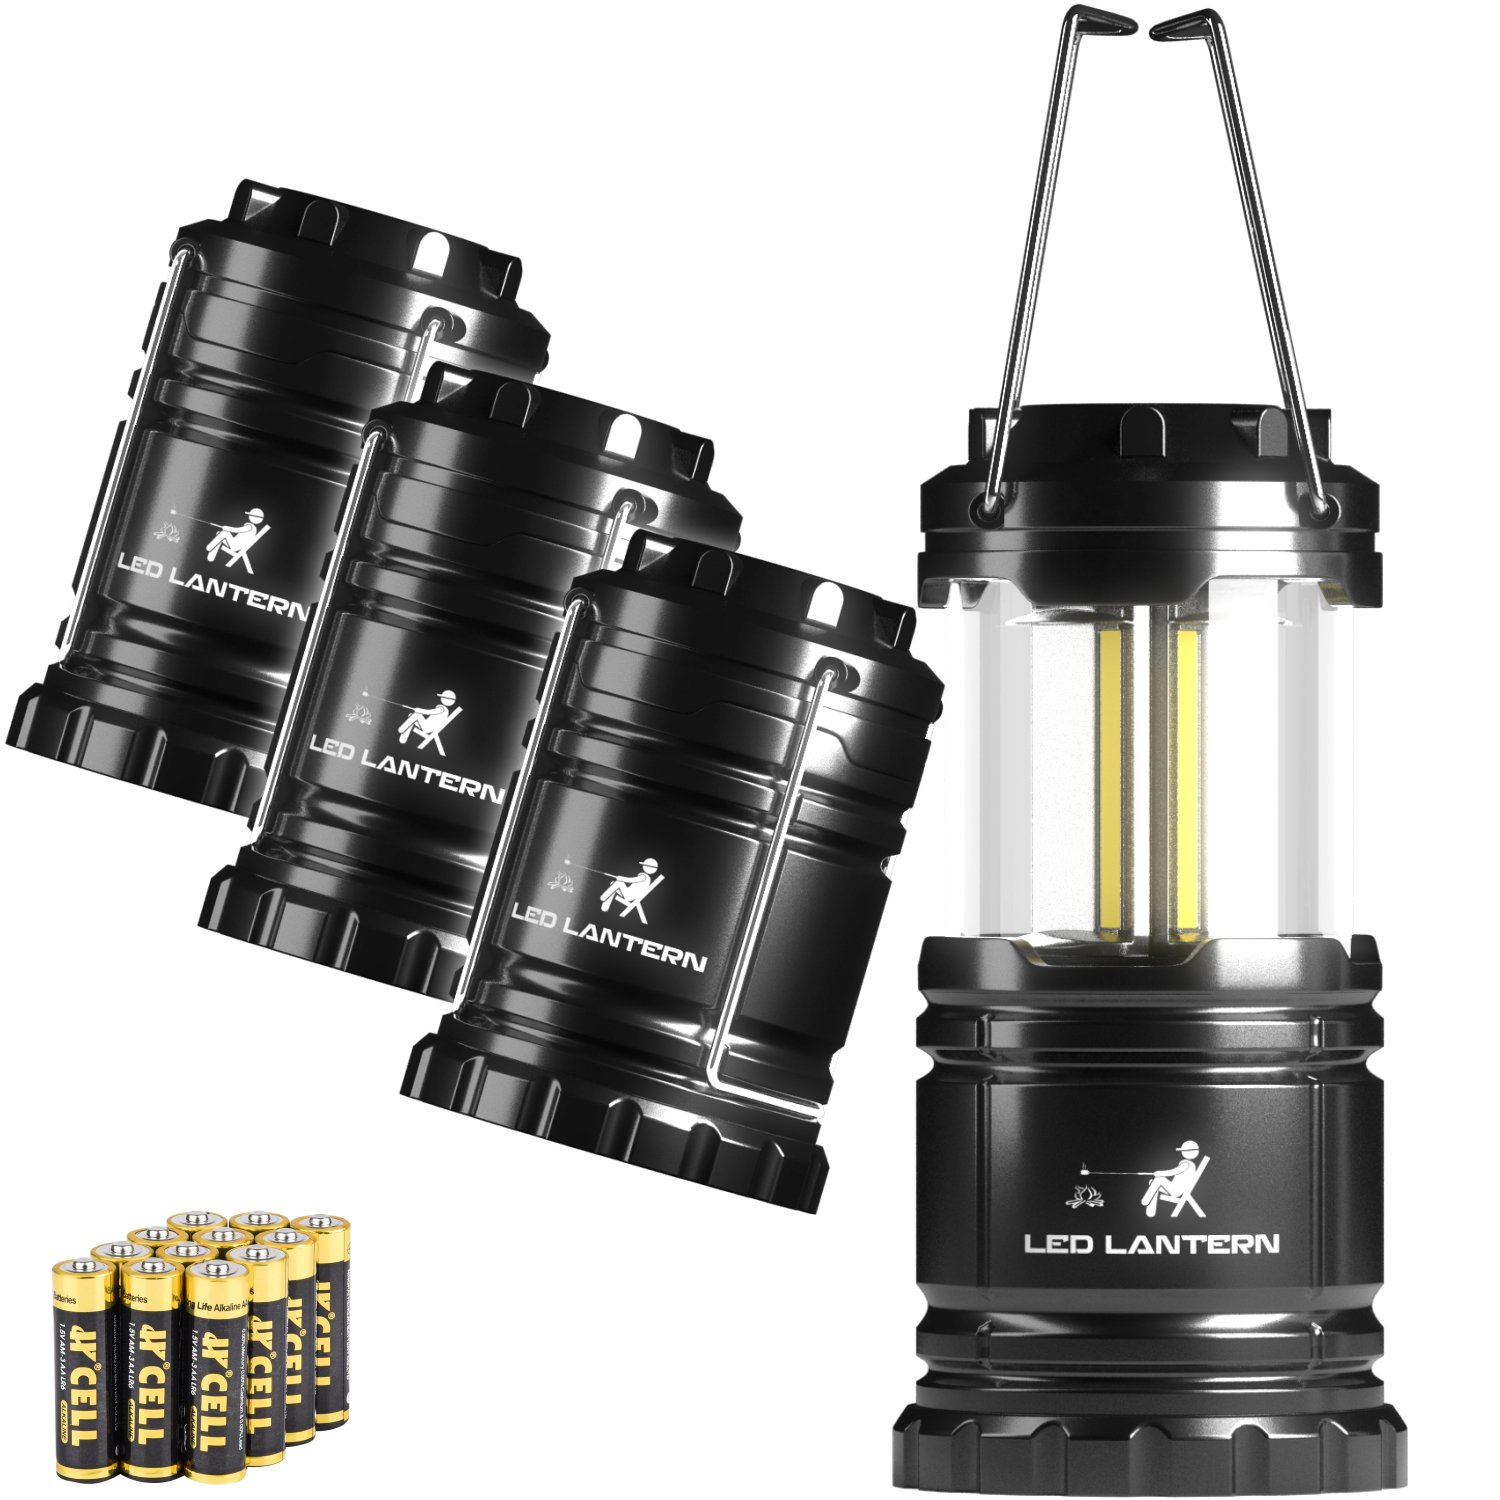 MalloMe LED Camping Lantern Flashlights 4 Pack - SUPER BRIGHT - 350 Lumen Portable Outdoor Lights 12 AA Batteries (Black, Collapsible)